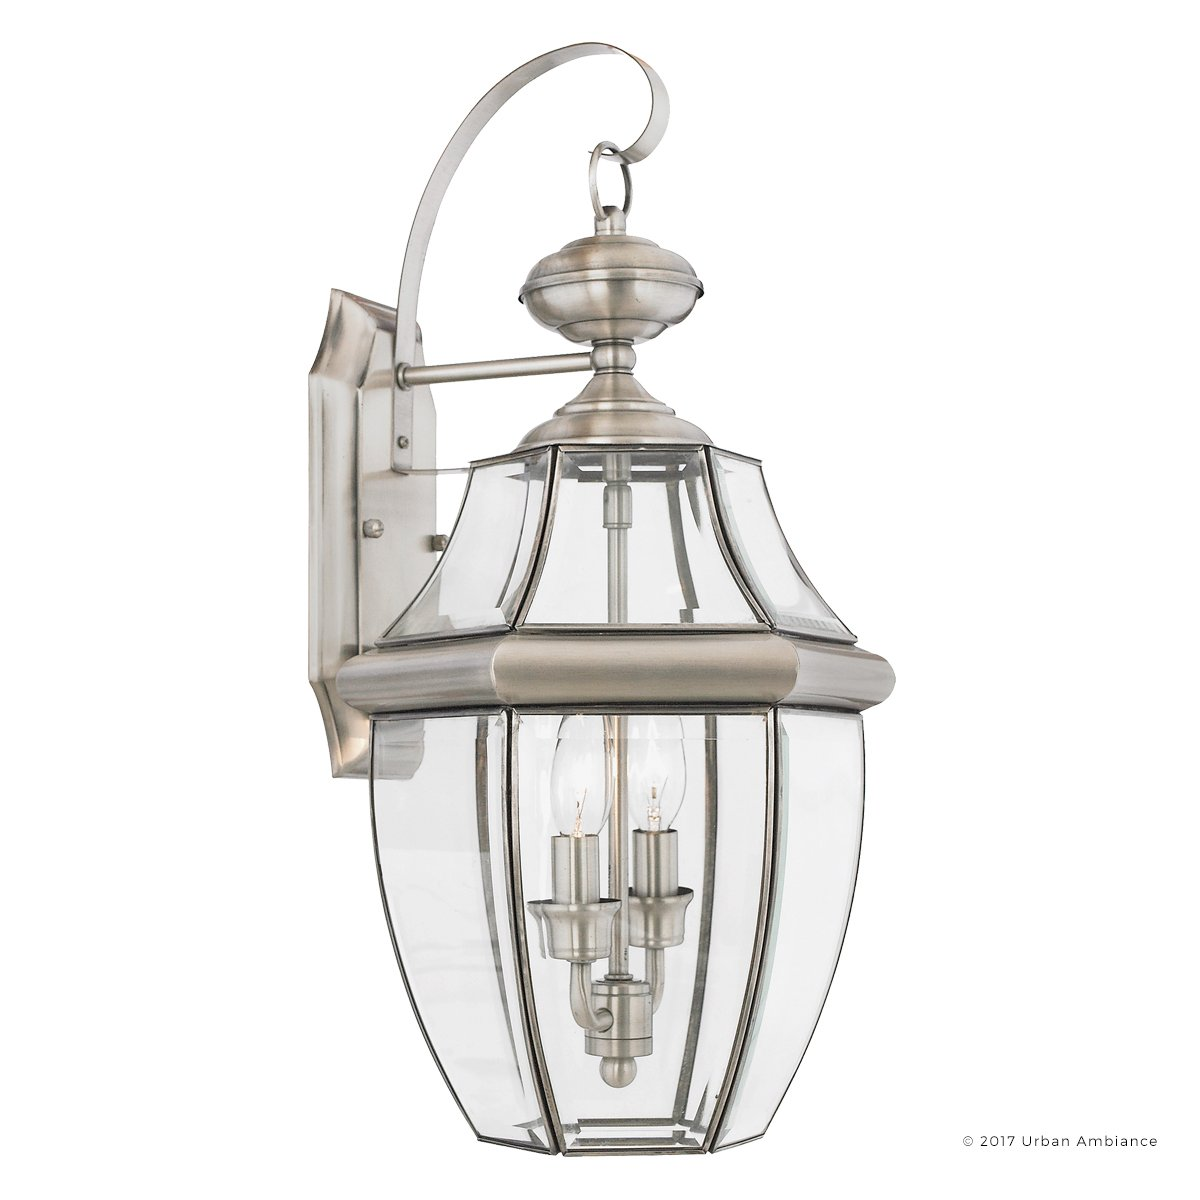 Luxury Colonial Outdoor Wall Light, Large Size: 20''H x 10.5''W, with Tudor Style Elements, Versatile Design, Classy Aged Silver Finish and Beveled Glass, UQL1145 by Urban Ambiance by Urban Ambiance (Image #6)